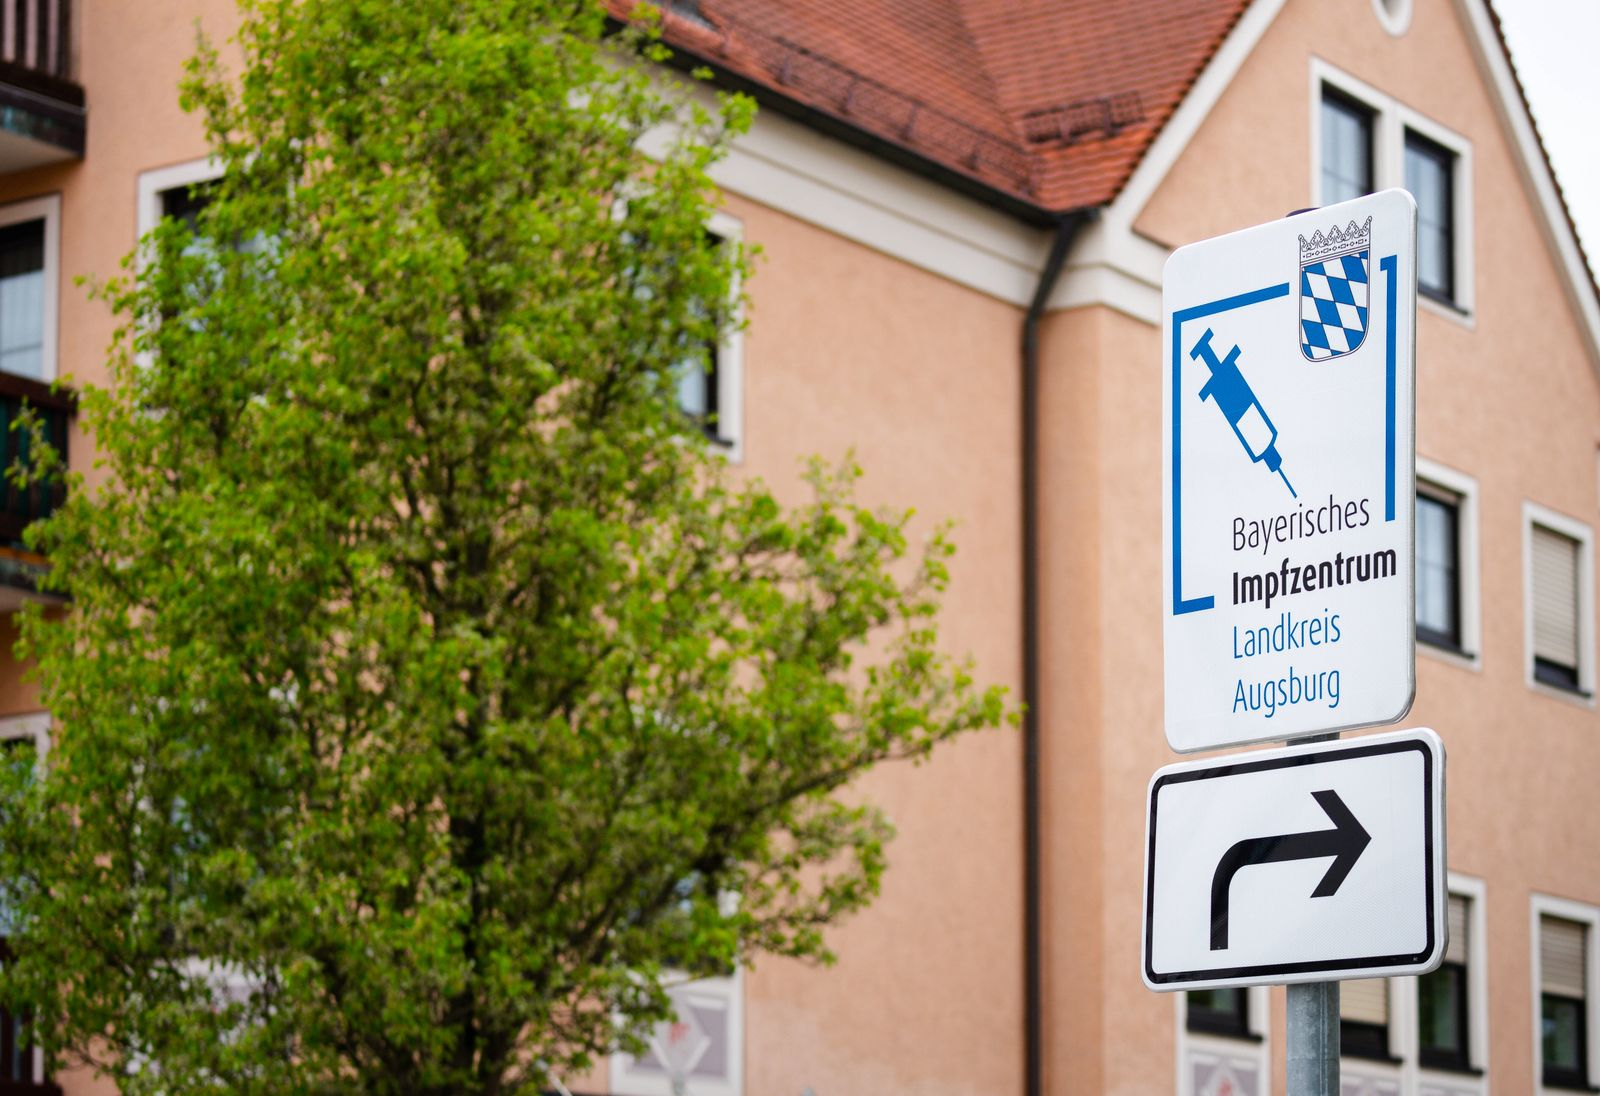 bobingen, augsburg - land, bavaria, germany - 04 may 2021: sign pointing the way to the bavarian vaccination center in t